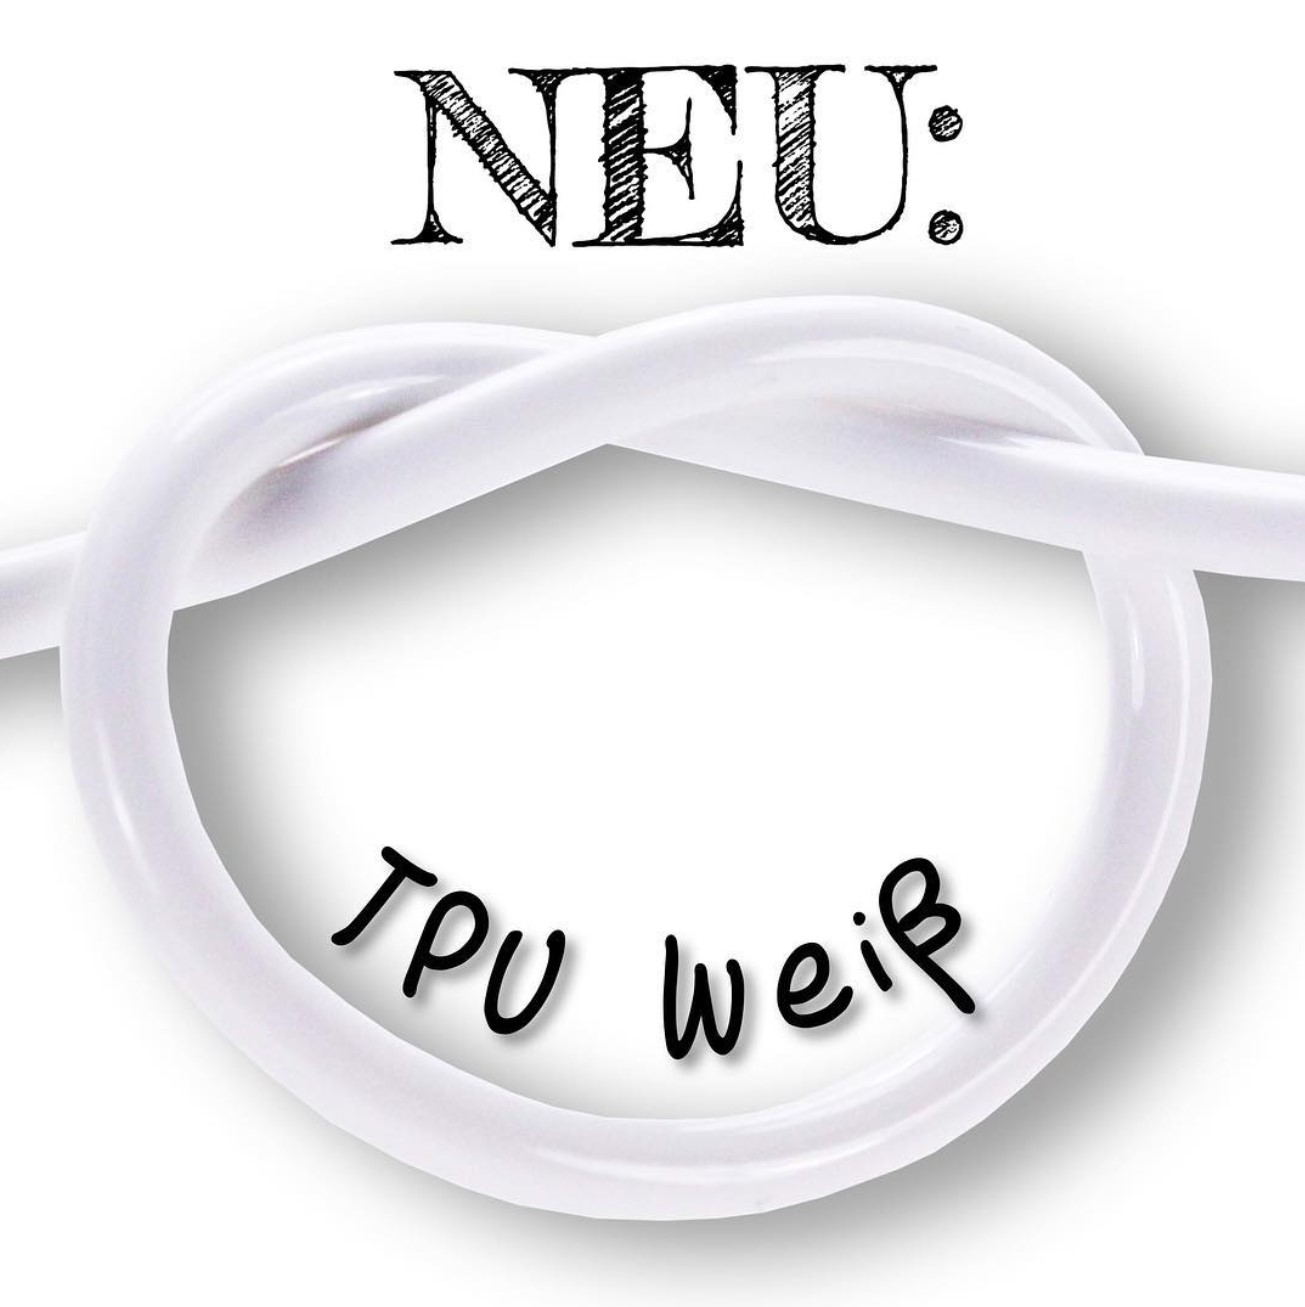 TPU flexibel in Weiß!